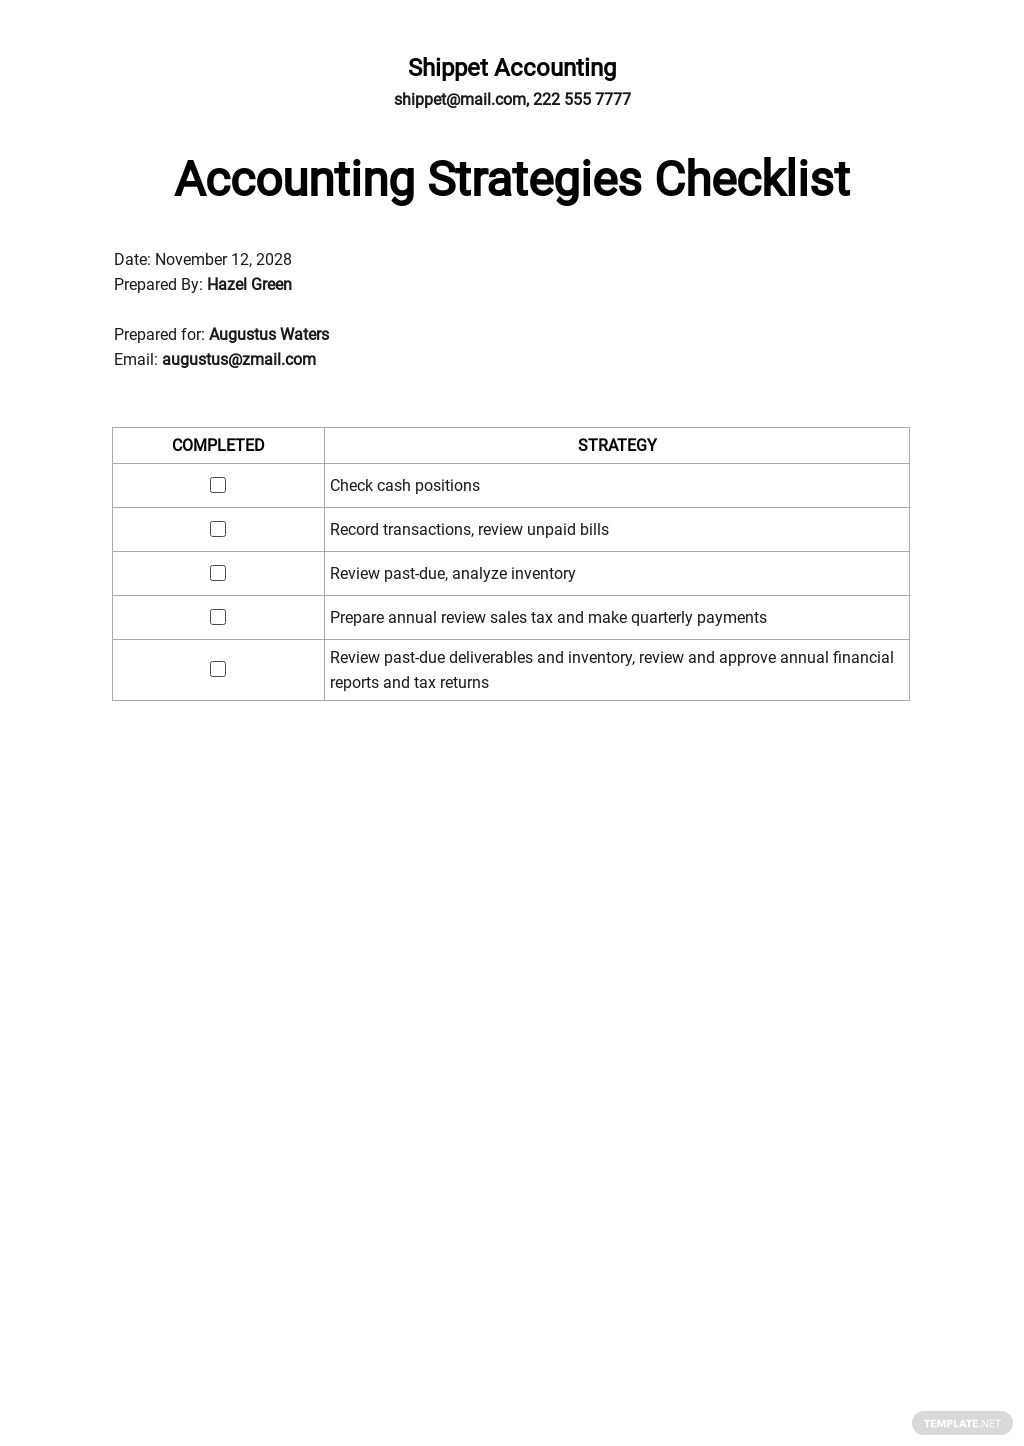 Possible Accounting Strategies Checklist Template